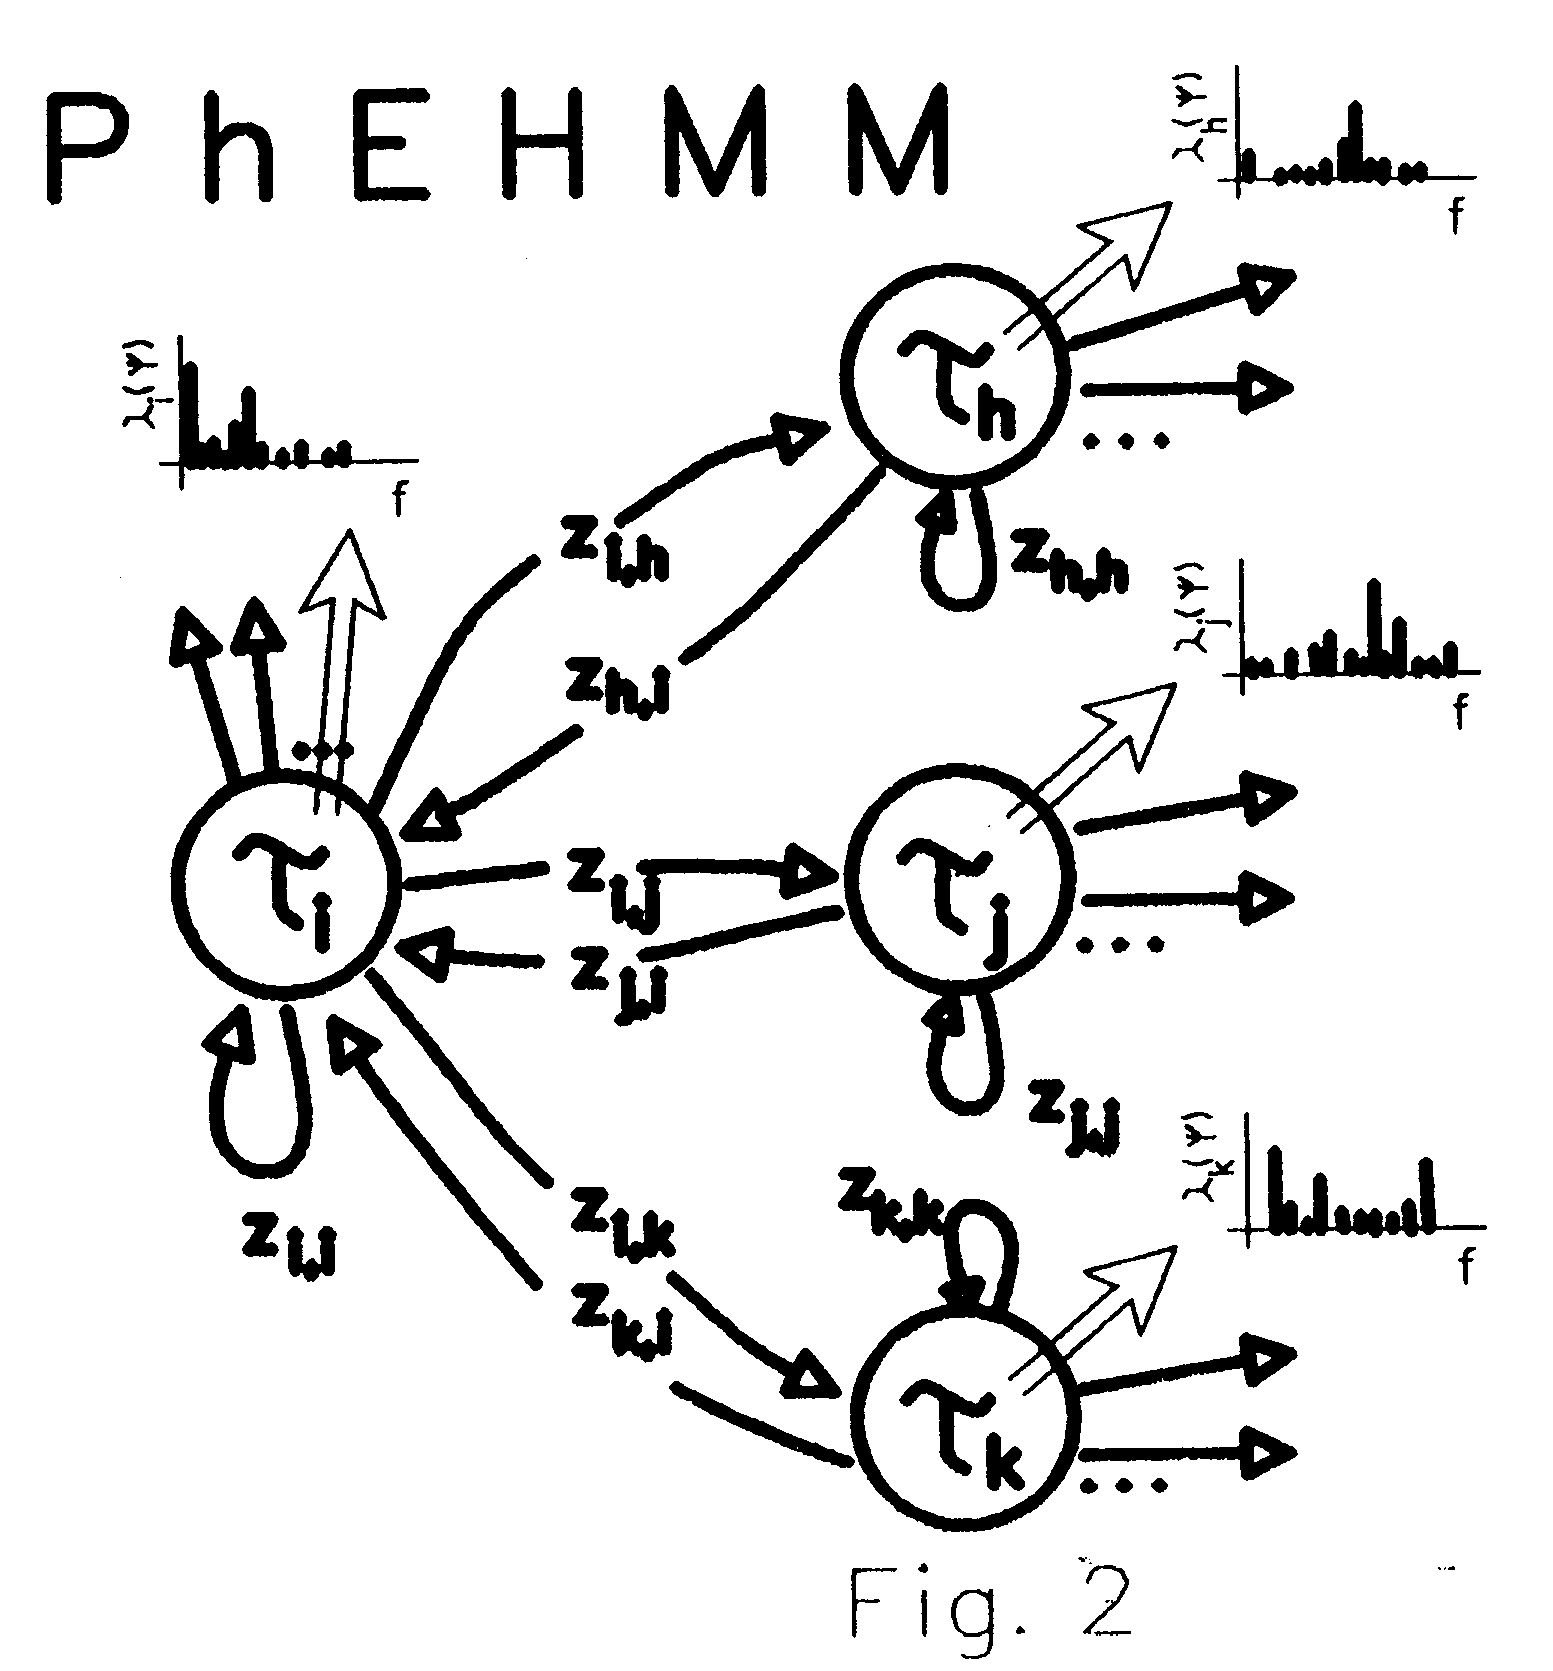 phonetic transcription and progress in speech synthesis Tts synthesis for myanmar language consists of four components such as text analysis, phonetic analysis, prosodic analysis and speech synthesis syllable segmentation and number converter for myanmar language are analyzed in the text.